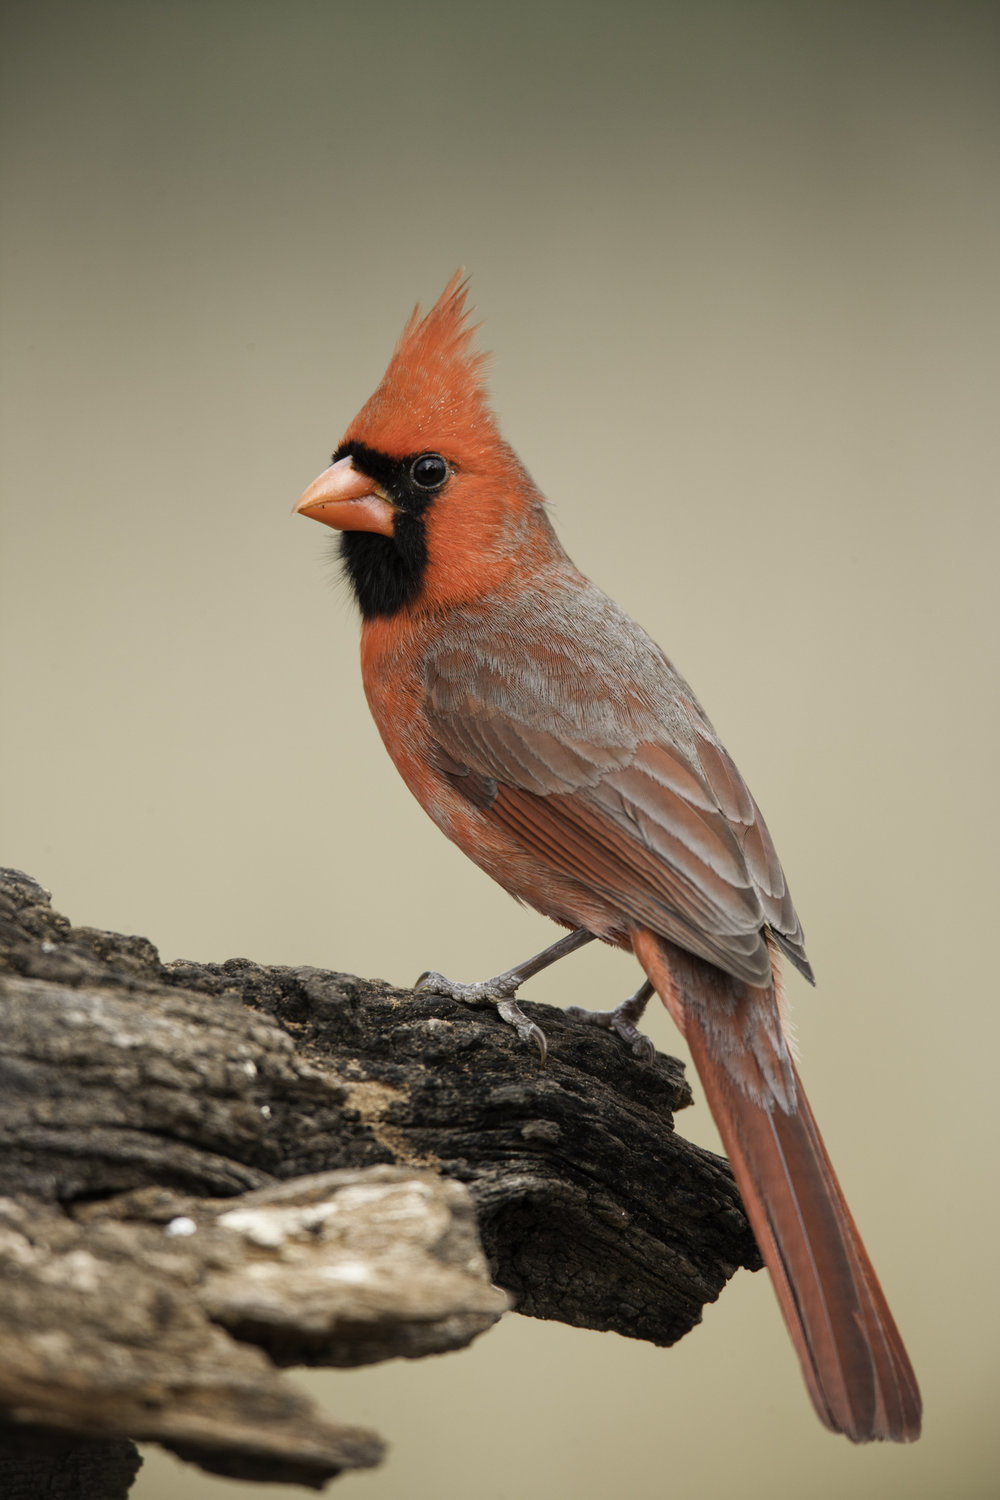 Northern Cardinal, male..雄性主红雀